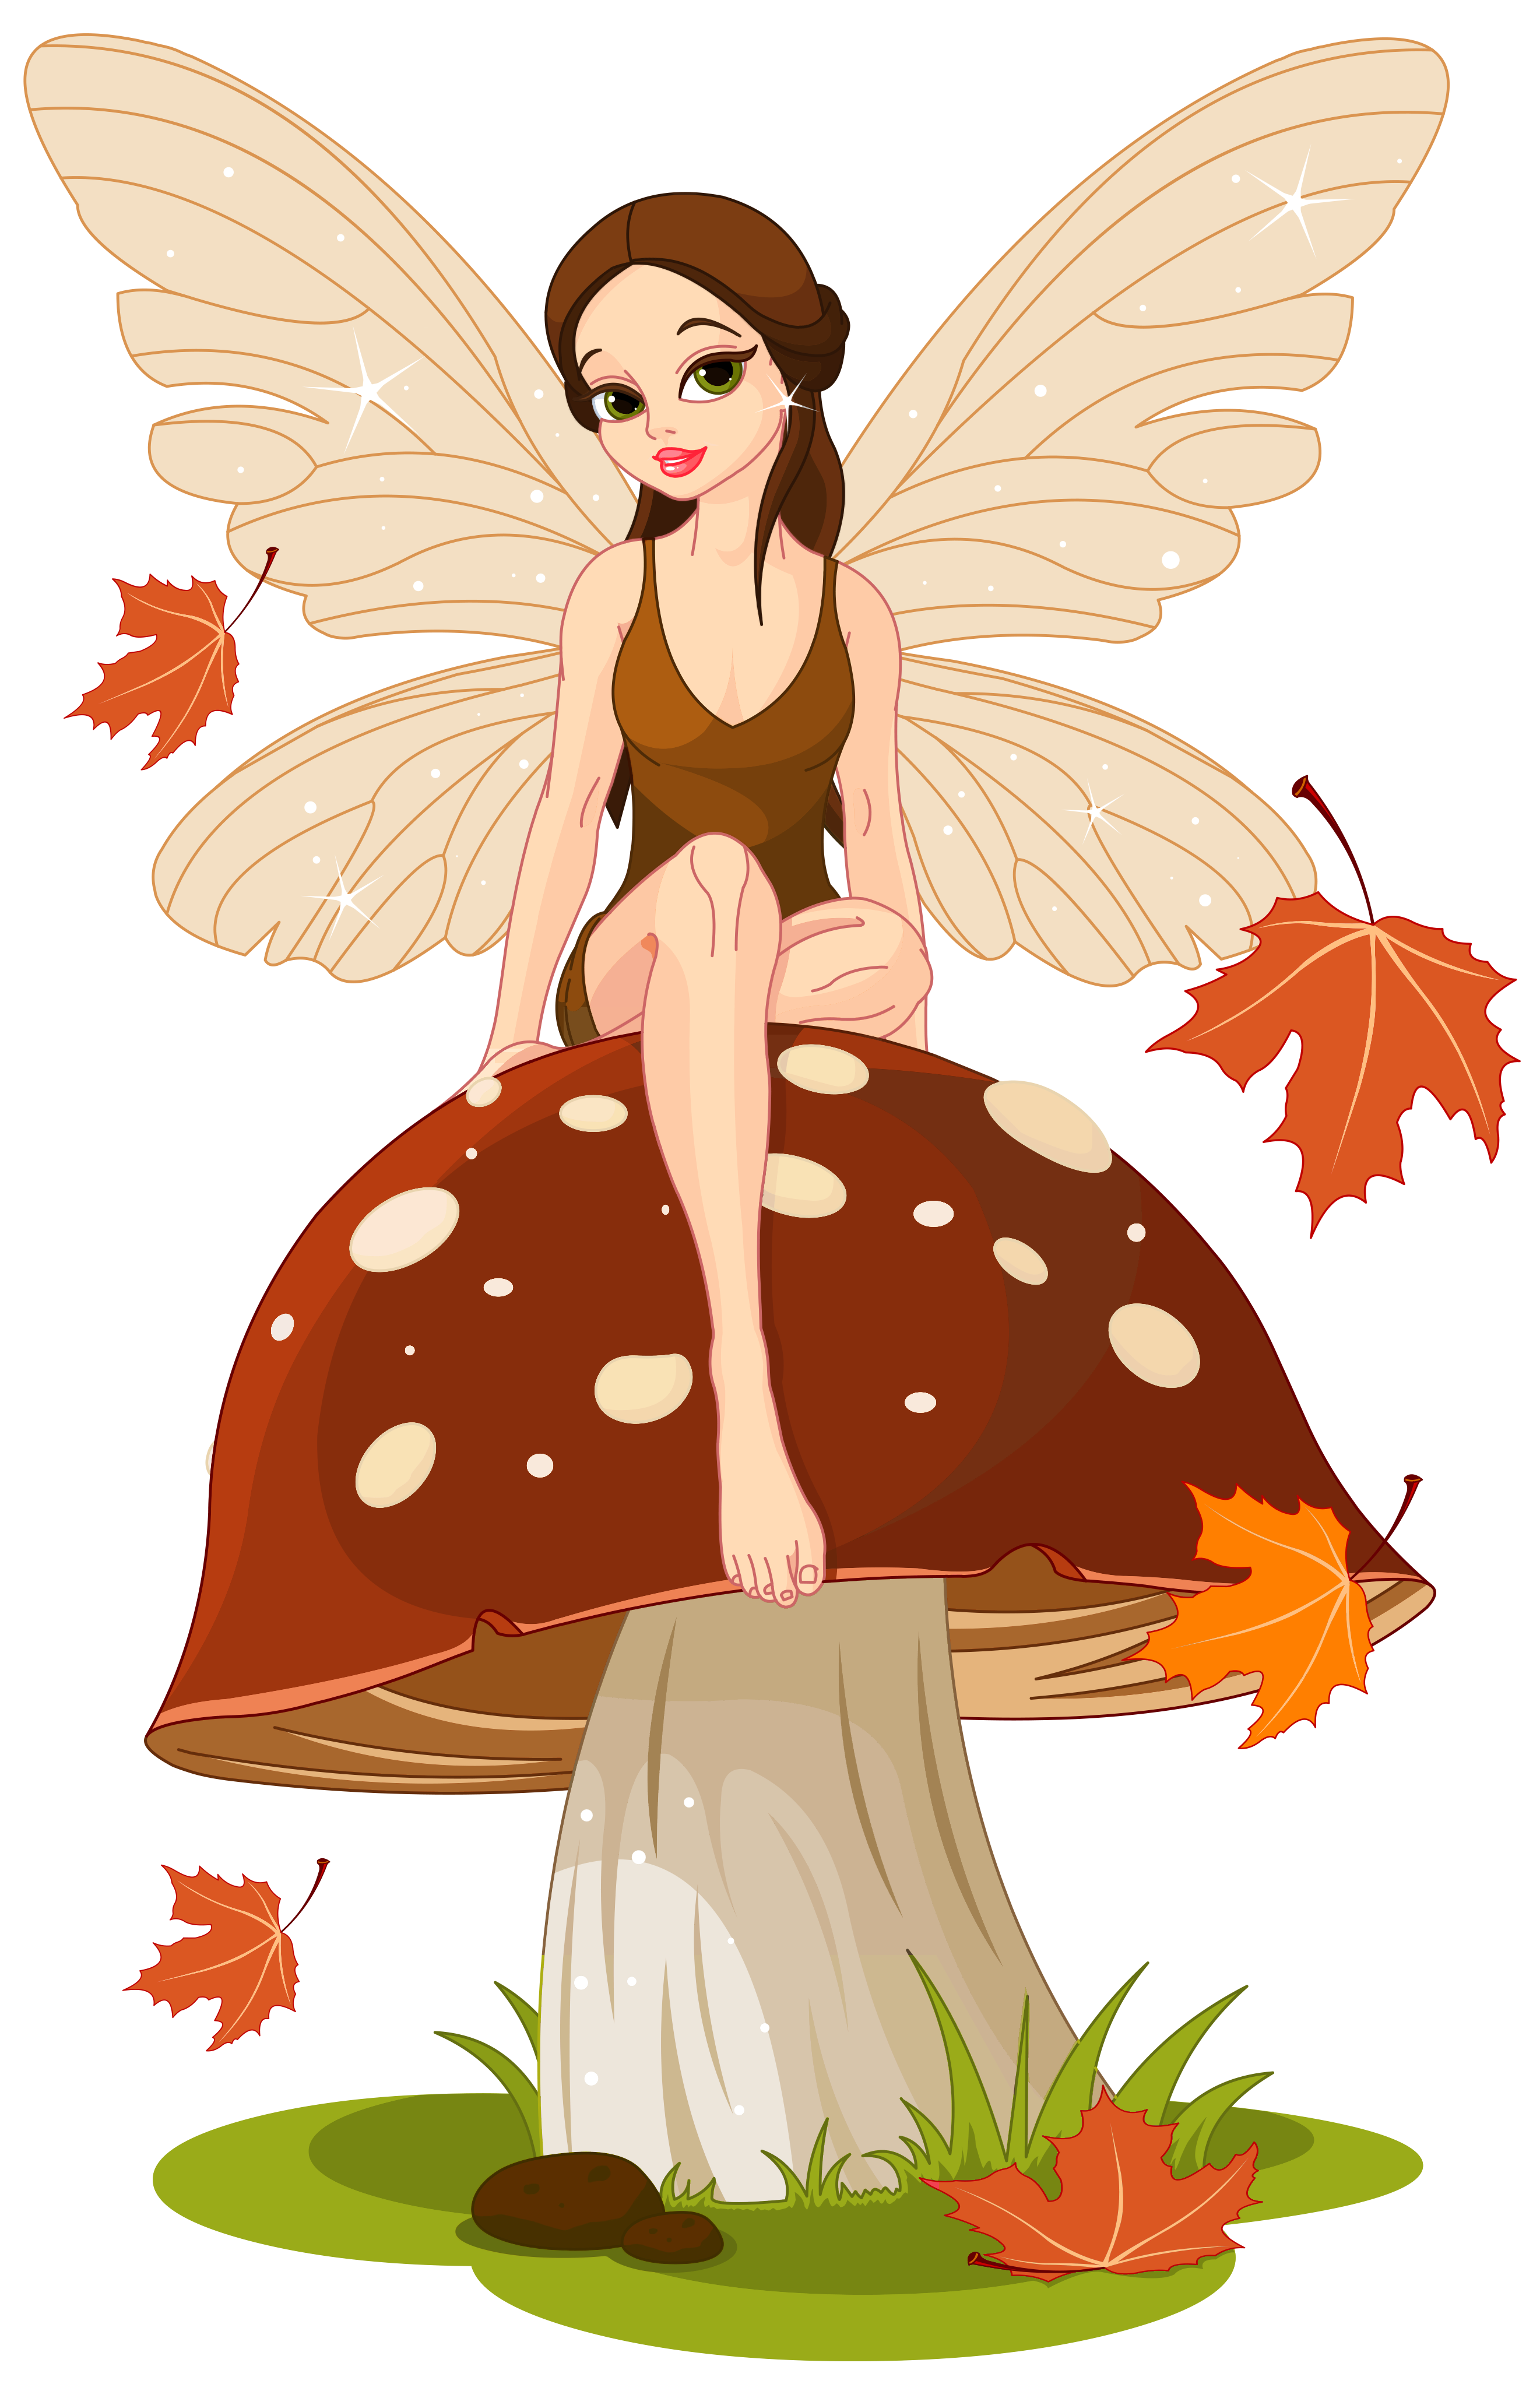 Words clipart angel. Autumn fairyand mushroom png